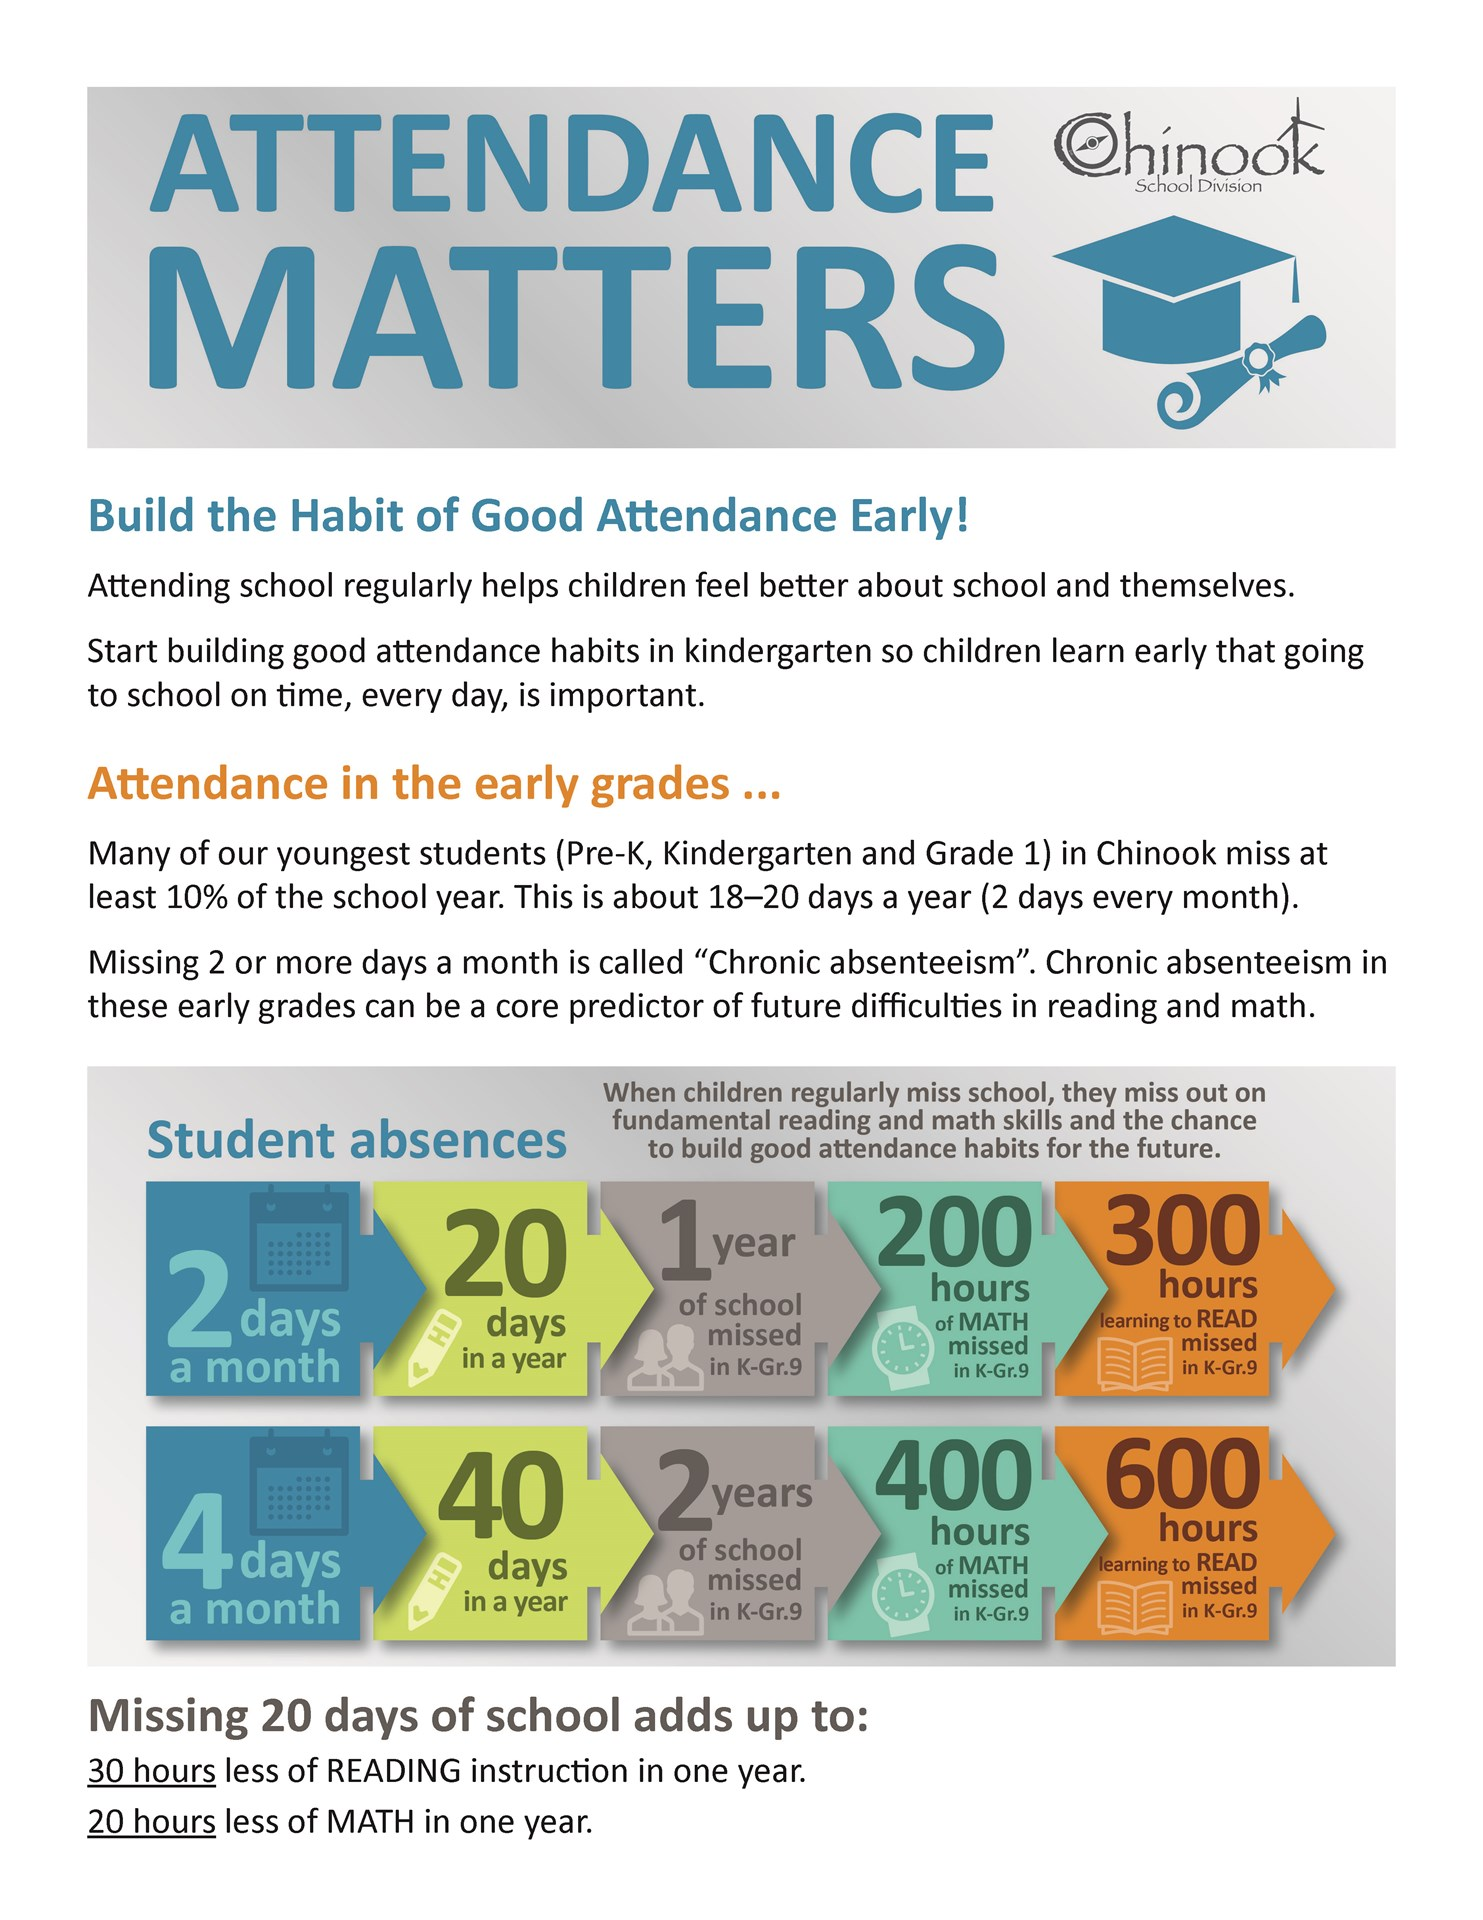 Build the Habit of Good Attendance Early!